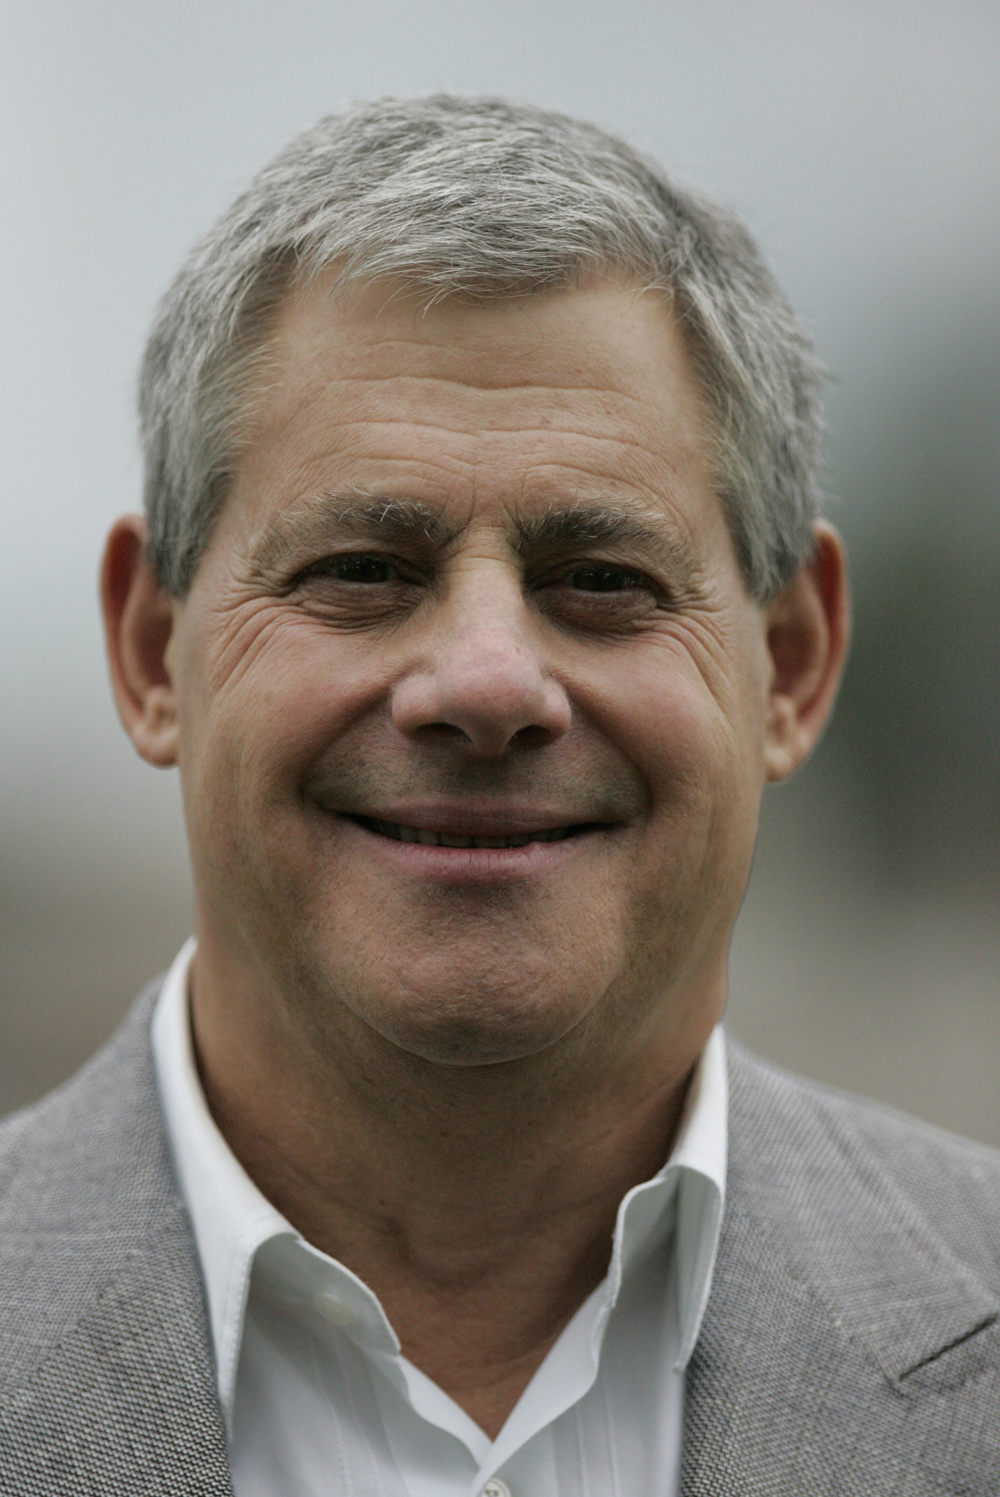 Cameron Mackintosh's quote #1